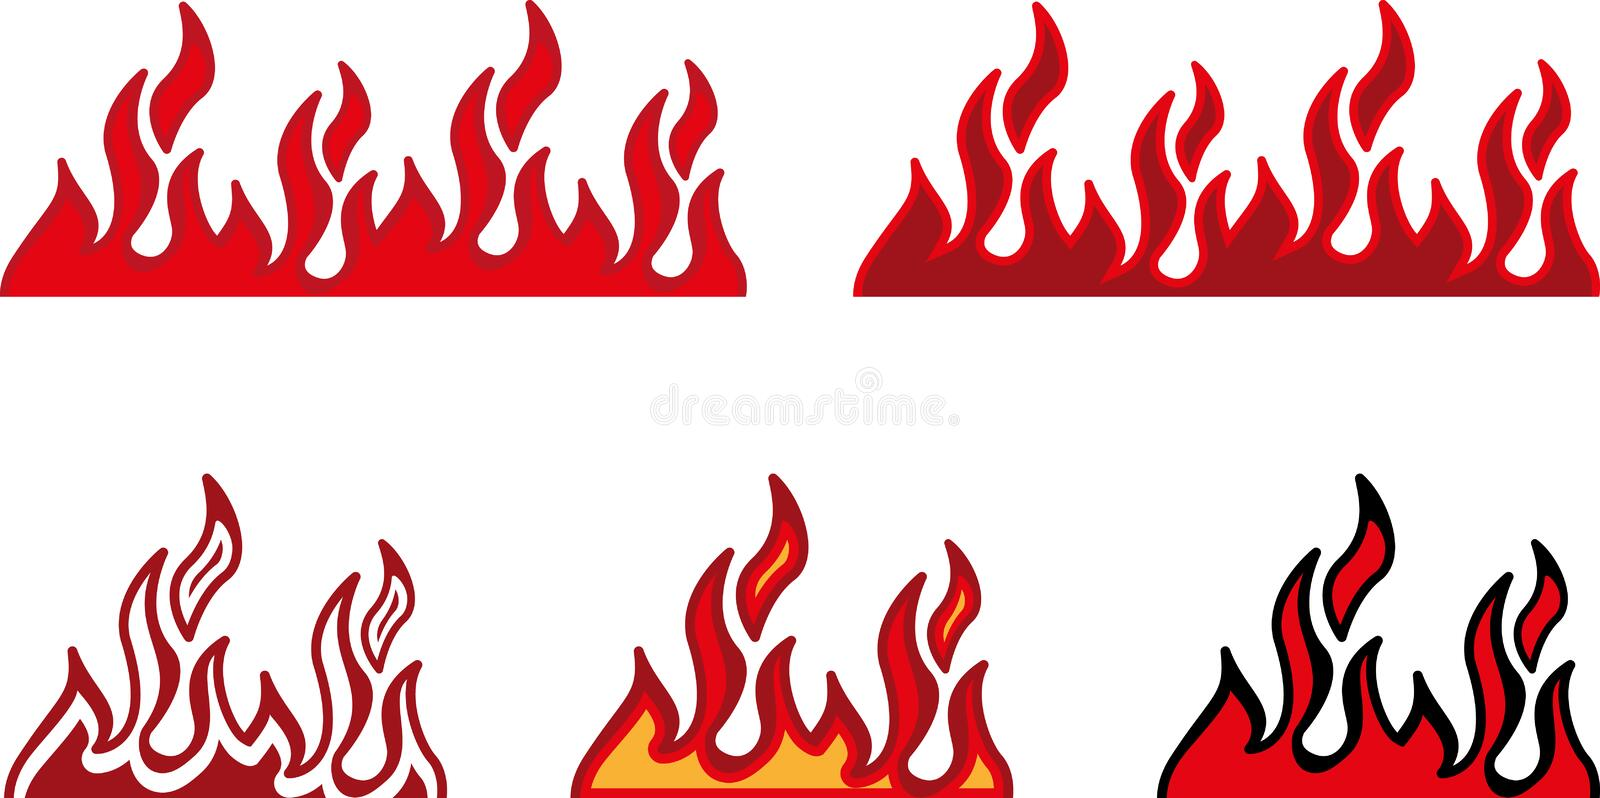 Fire border stock illustration